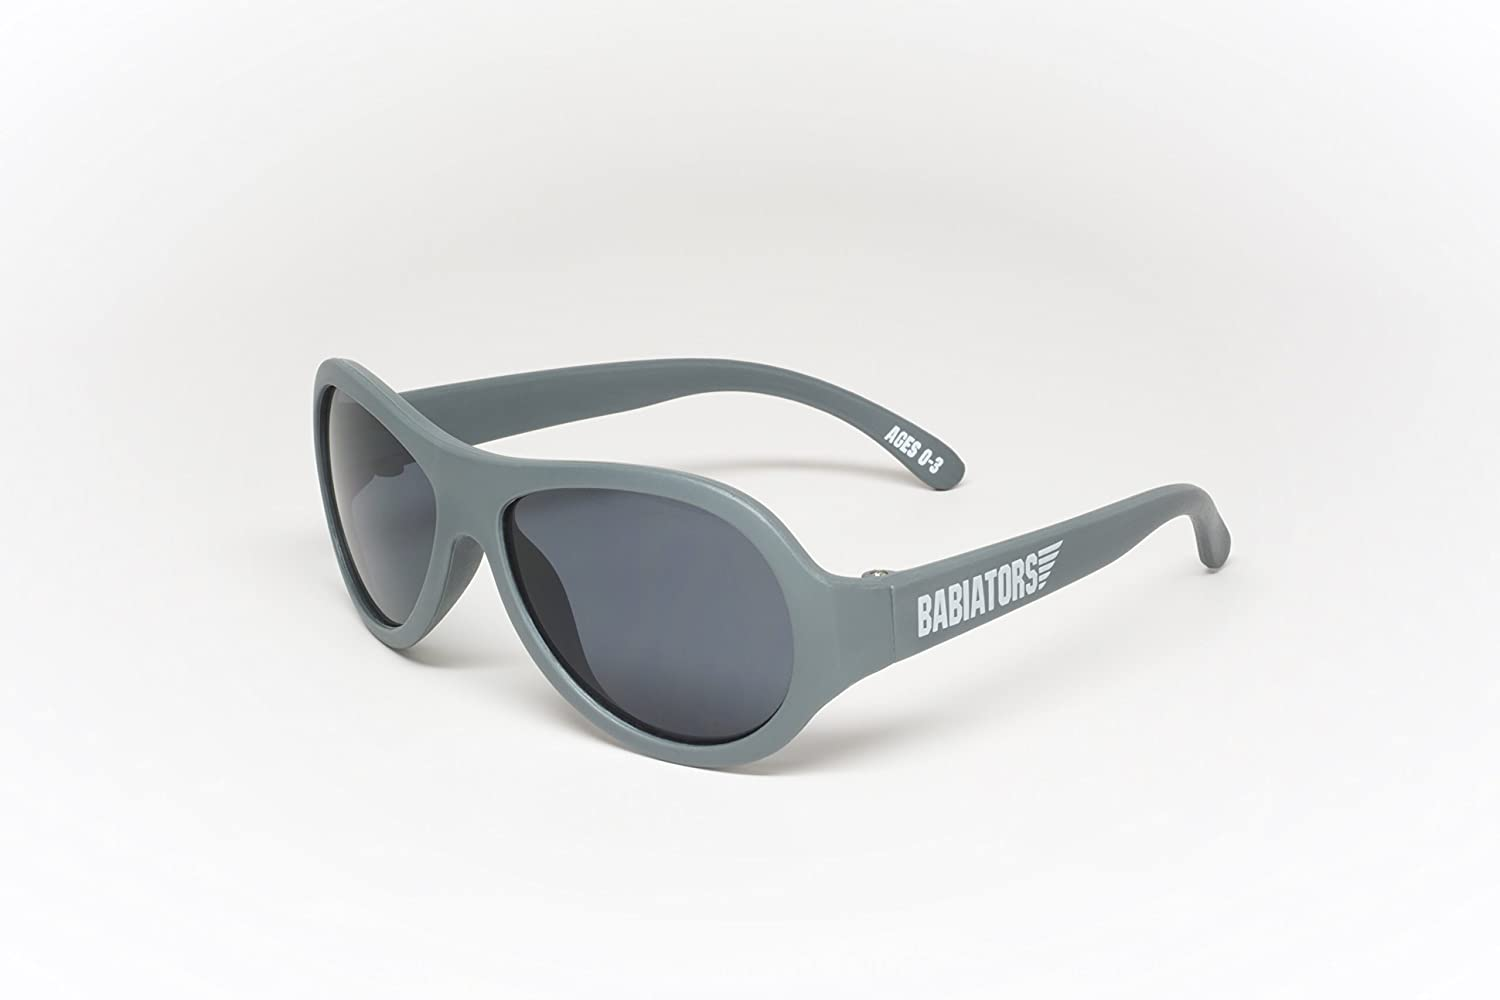 3b467742e8 Amazon.com  Babiators Little Boys  Sunglasses - Galactic Gray - 3-7Y  Baby